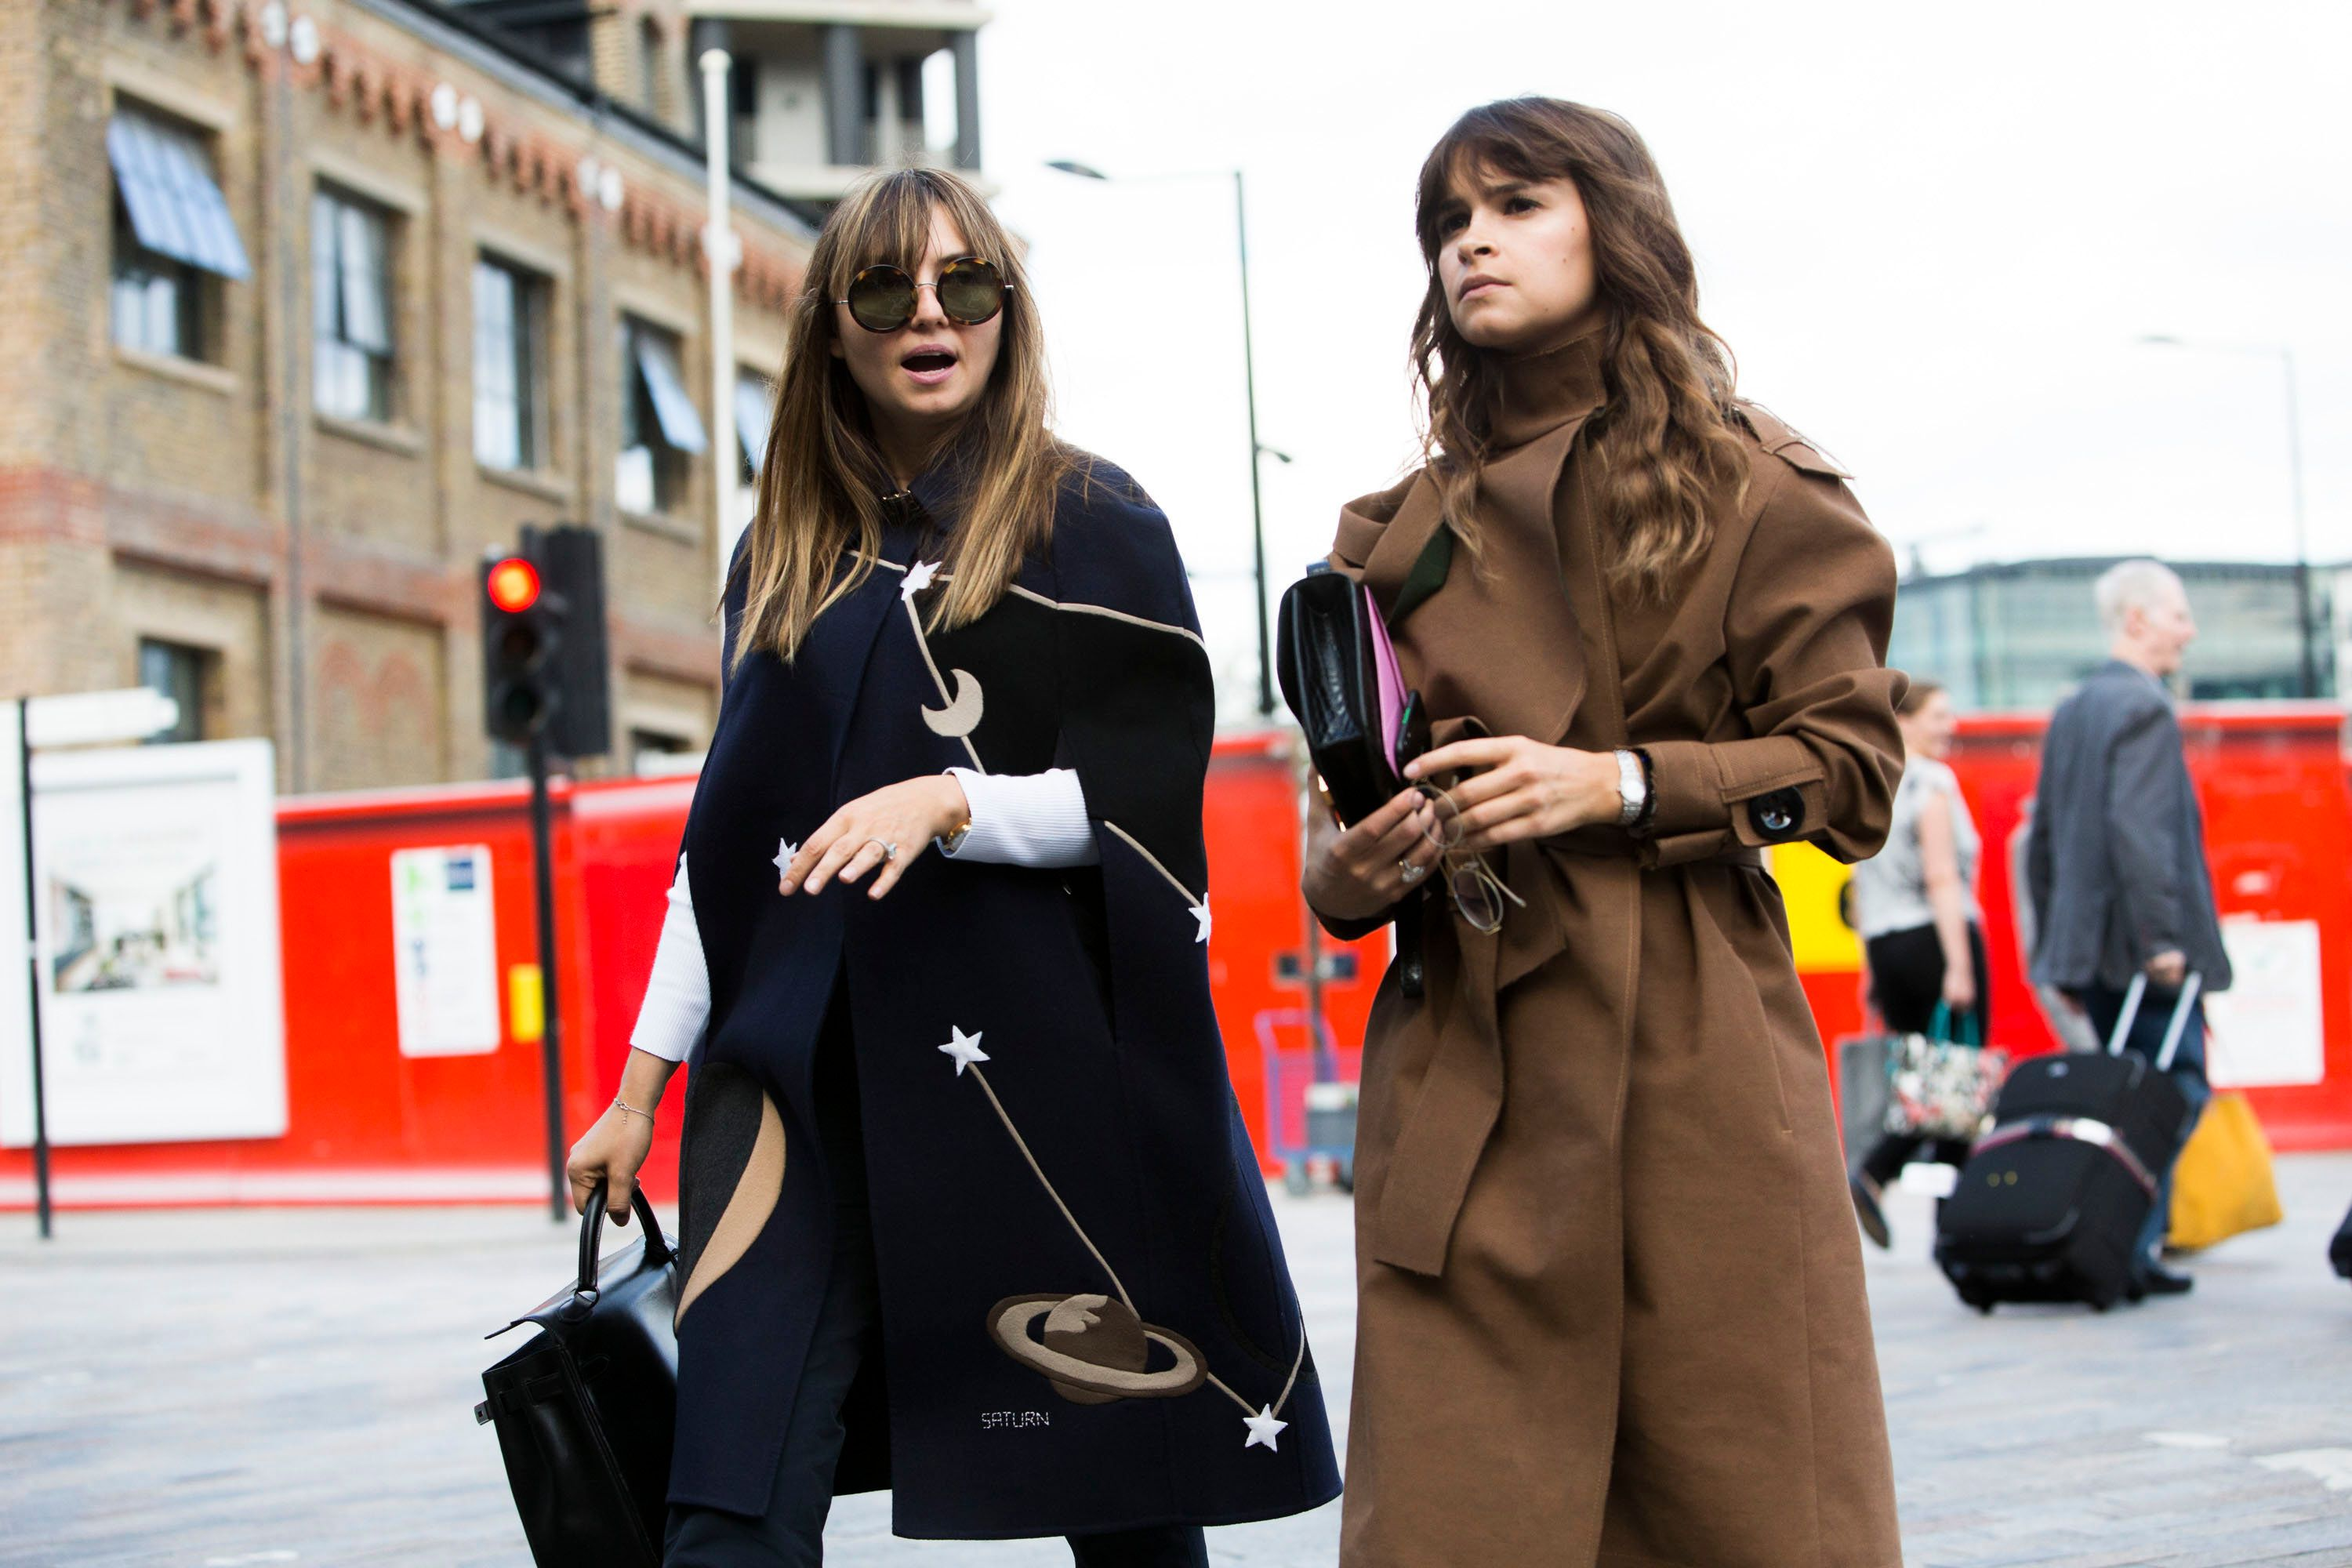 LONDON, ENGLAND - SEPTEMBER 19:  Nasiba Adilova wears a blue Valentino cape with planets and stars while Miroslava Duma wears a brown AWAKE trench coat and Hermes purse during London Fashion Week Spring Summer 2016 at Kings Cross on September 19, 2015 in London, England  (Photo by Melodie Jeng/Getty Images)